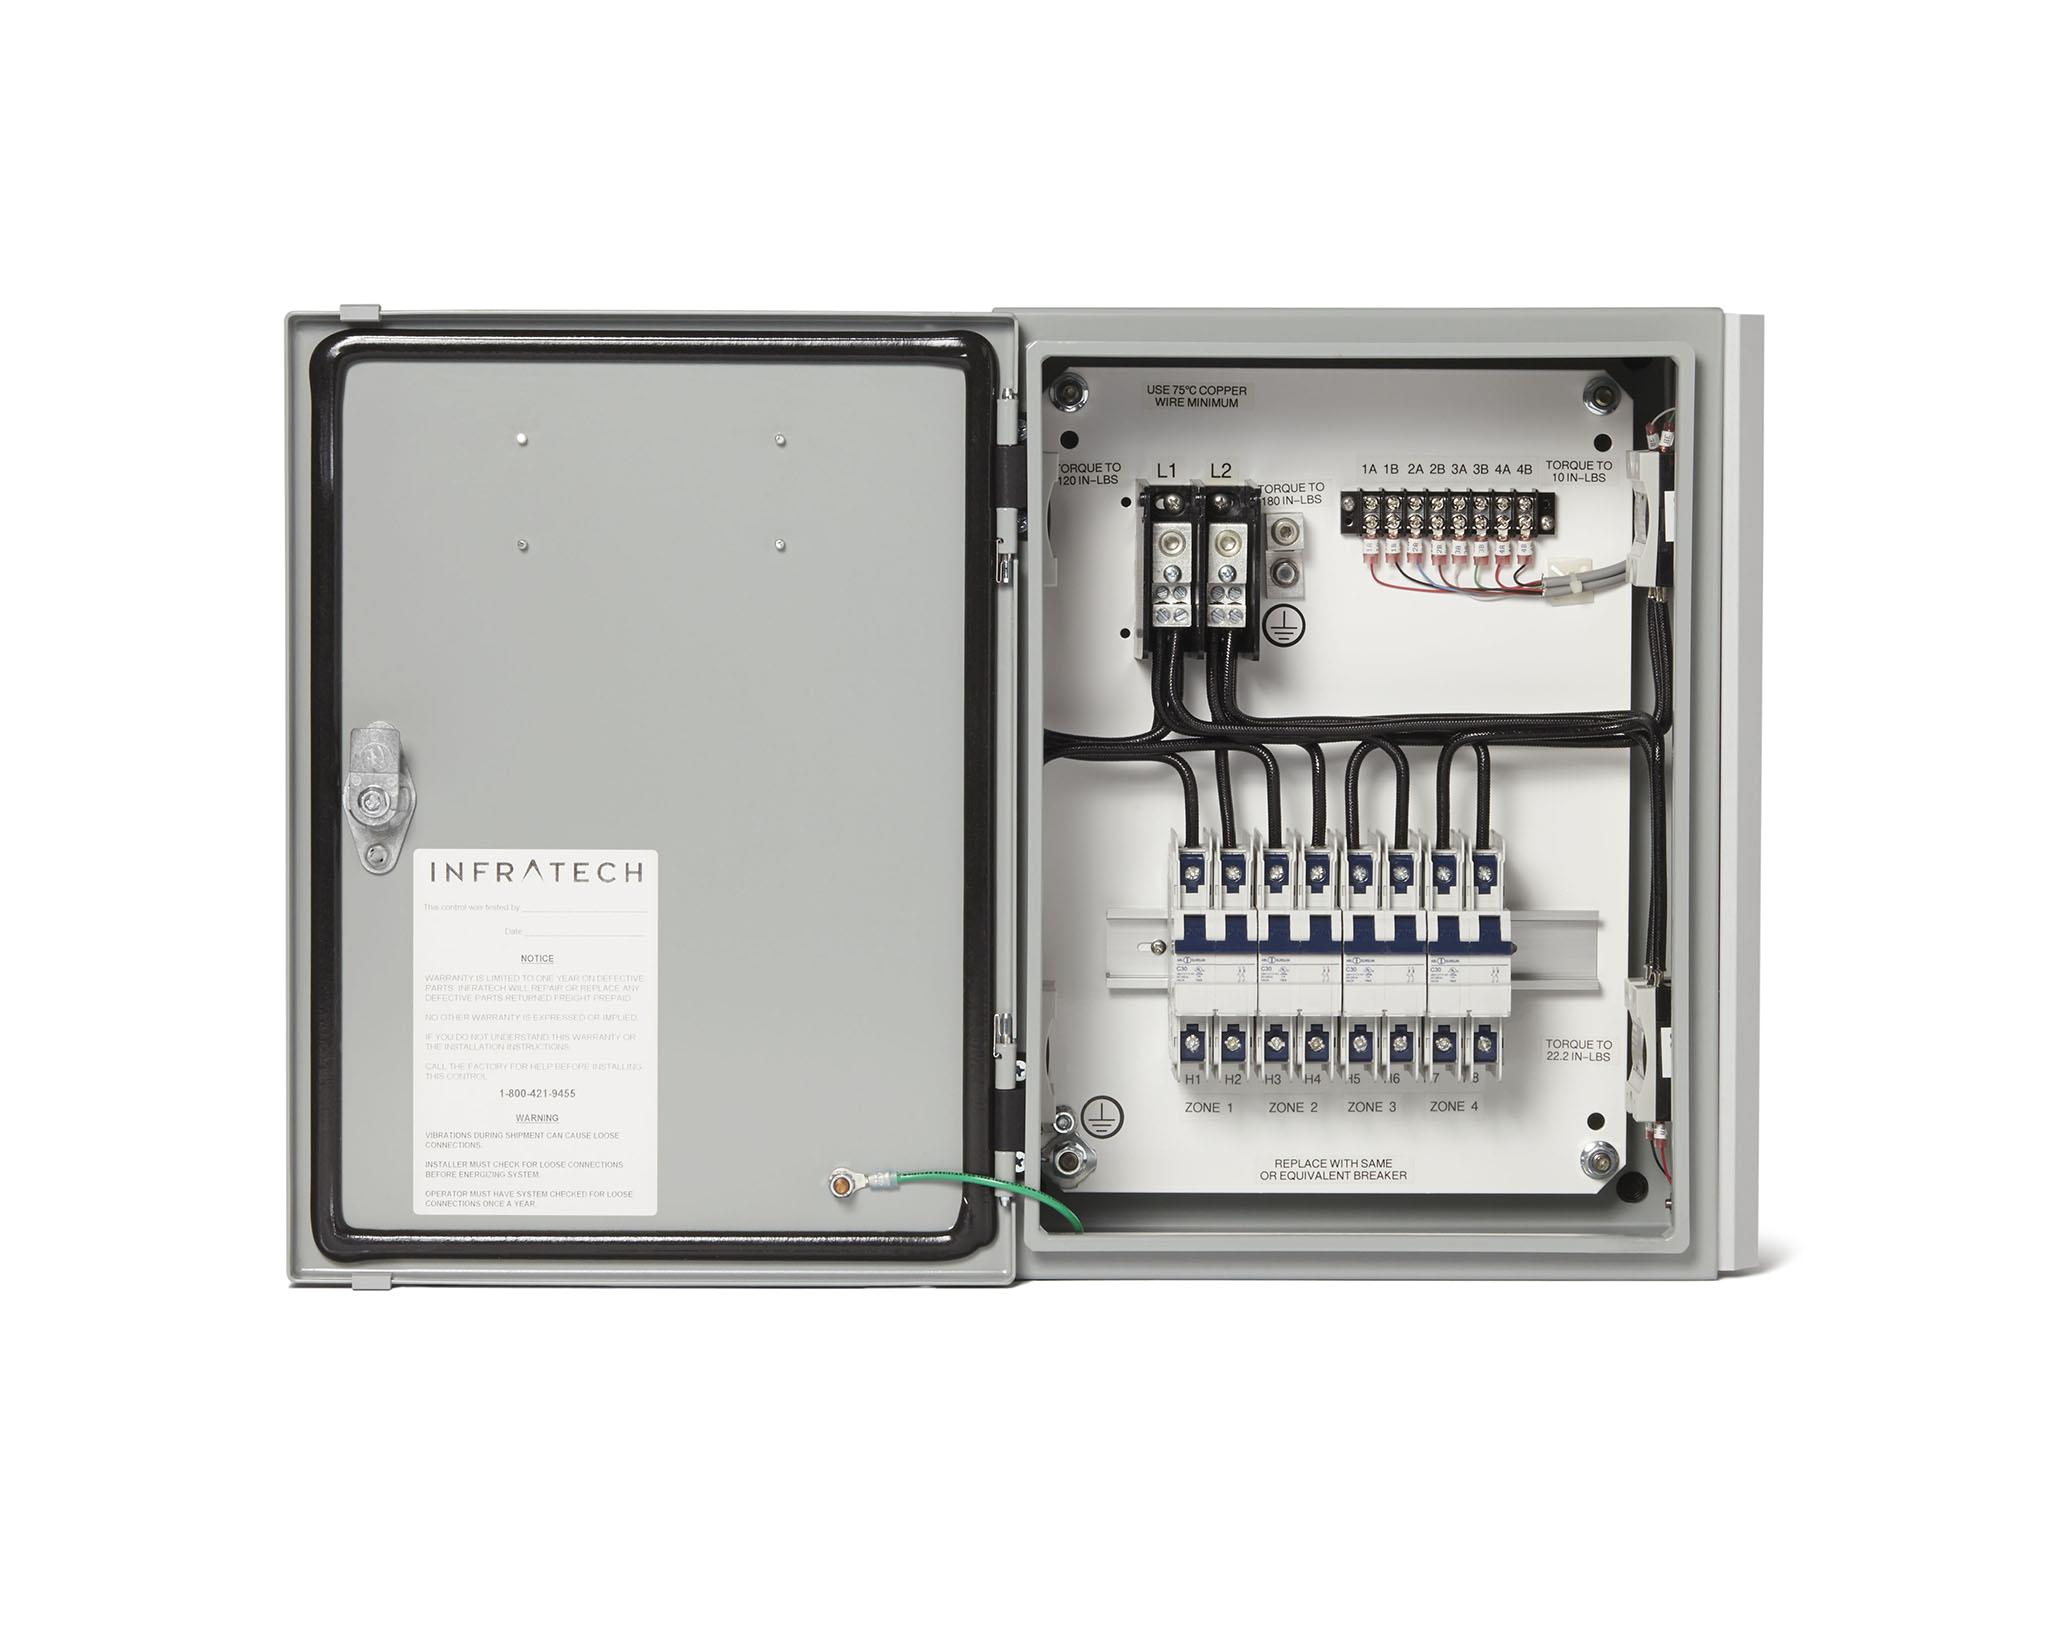 Infratech Heater Wiring Diagram Infratech 5 Relay Panel for Electric Heater 30 4055